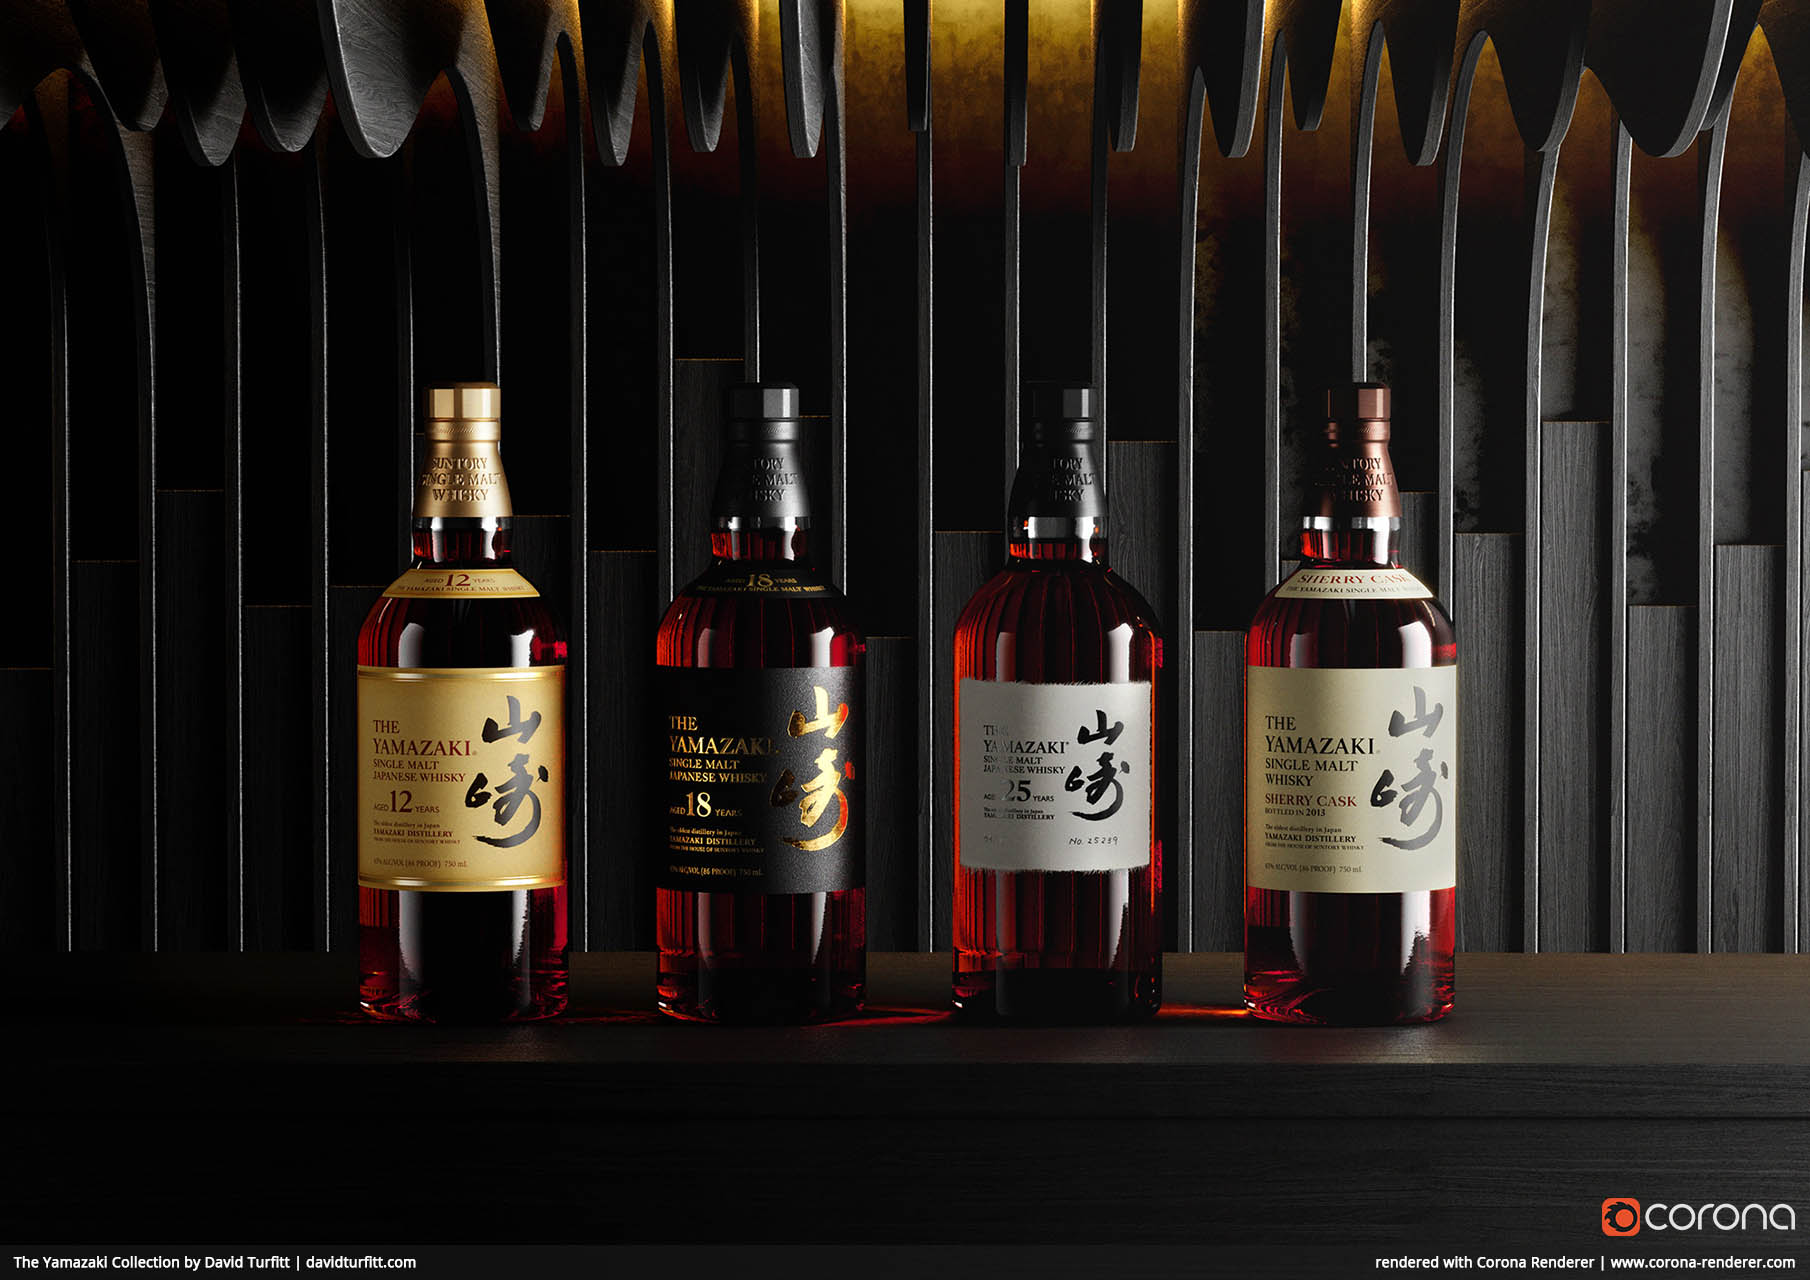 The Yamazaki Collection by David Turfitt